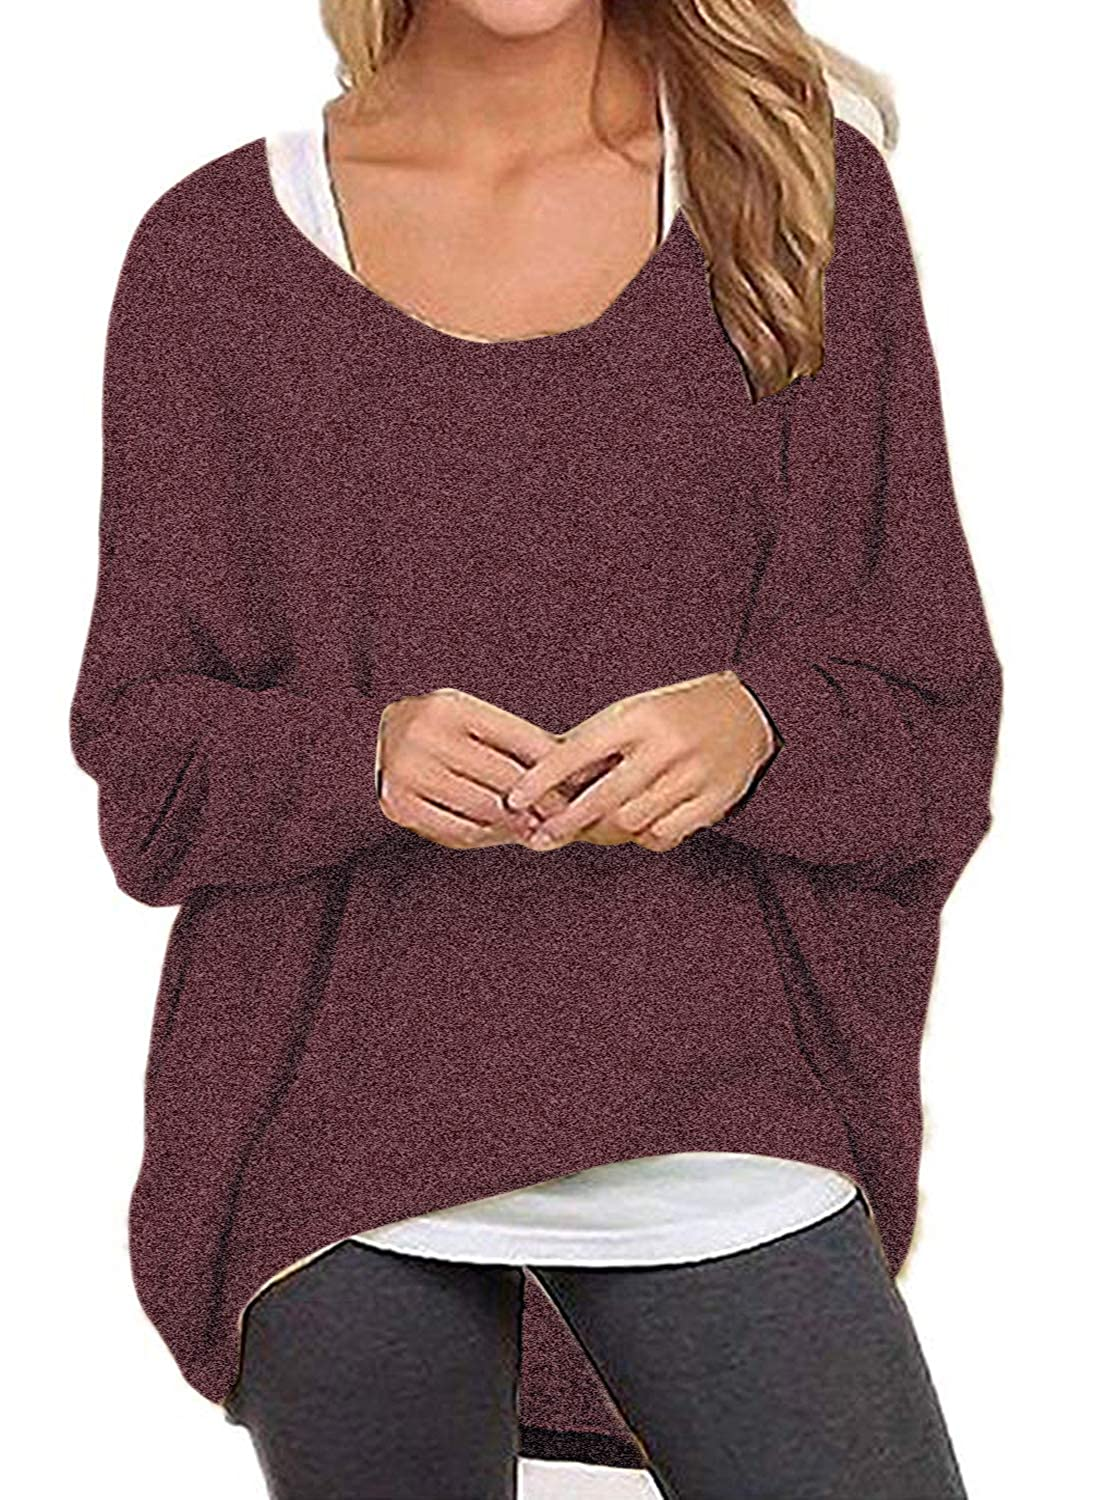 03wine Red I2crazy Women's Long Sleeve Casual Loose Stylish Comfortable TShirt Dress